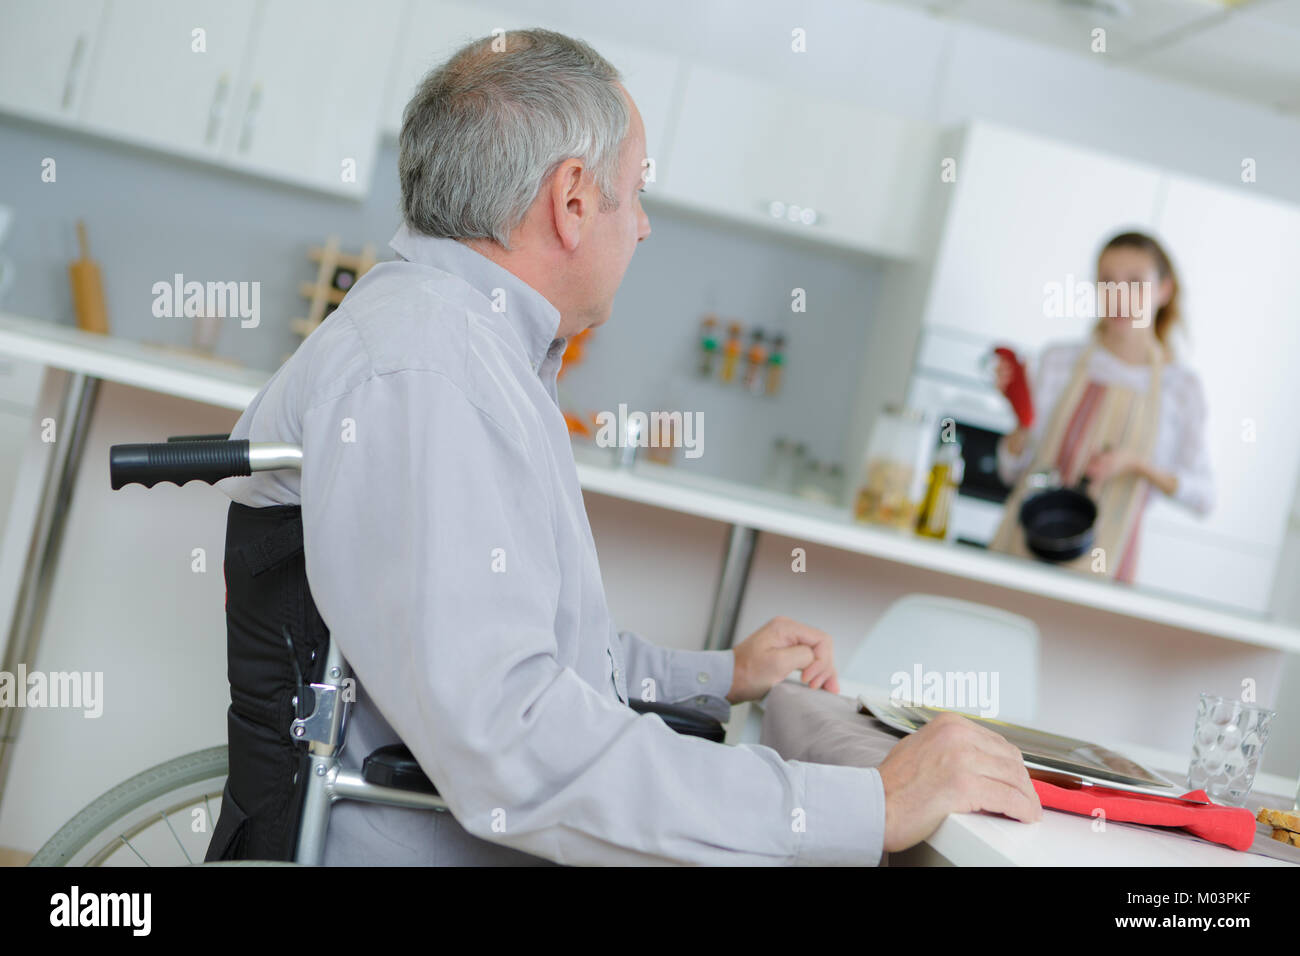 service for the handicapped old man - Stock Image